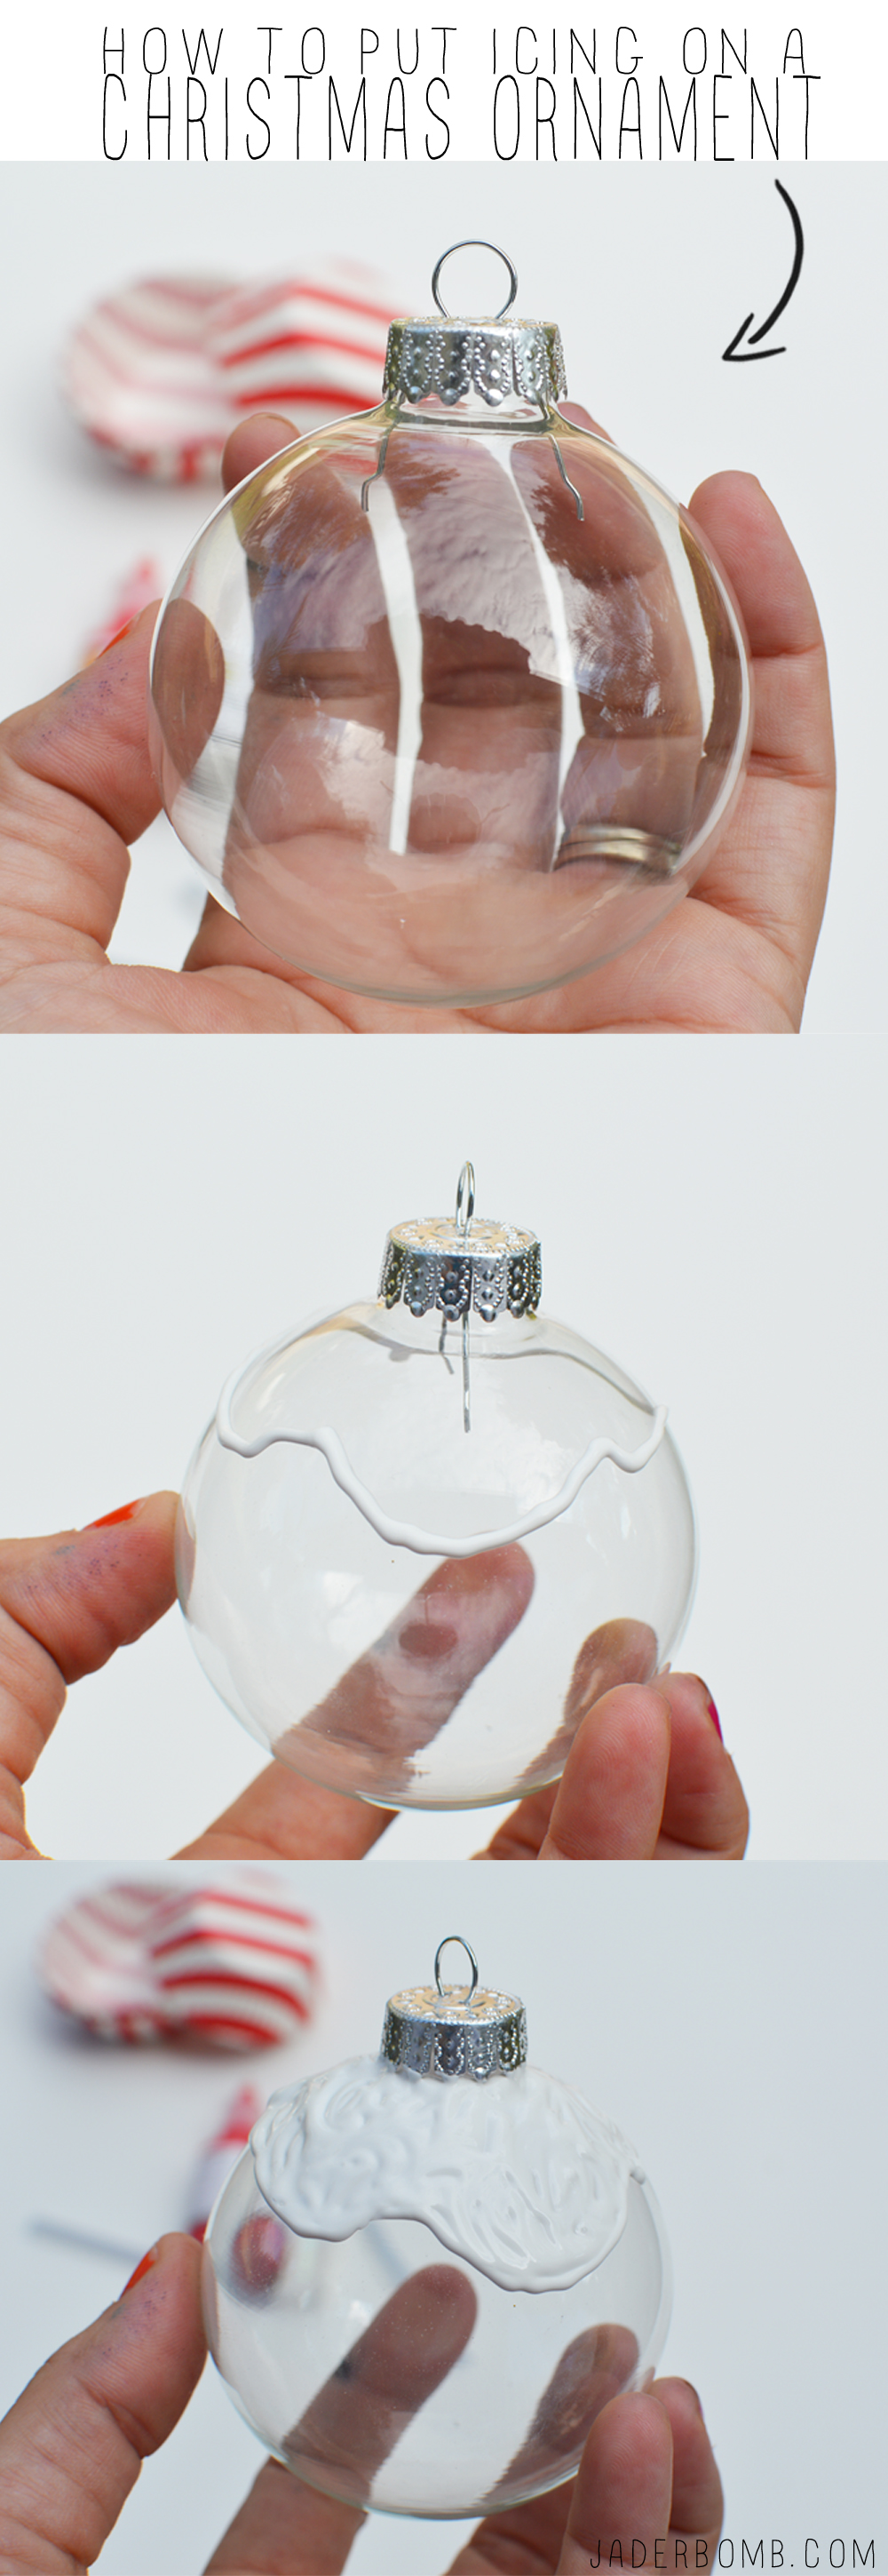 how to put icing on an ornament